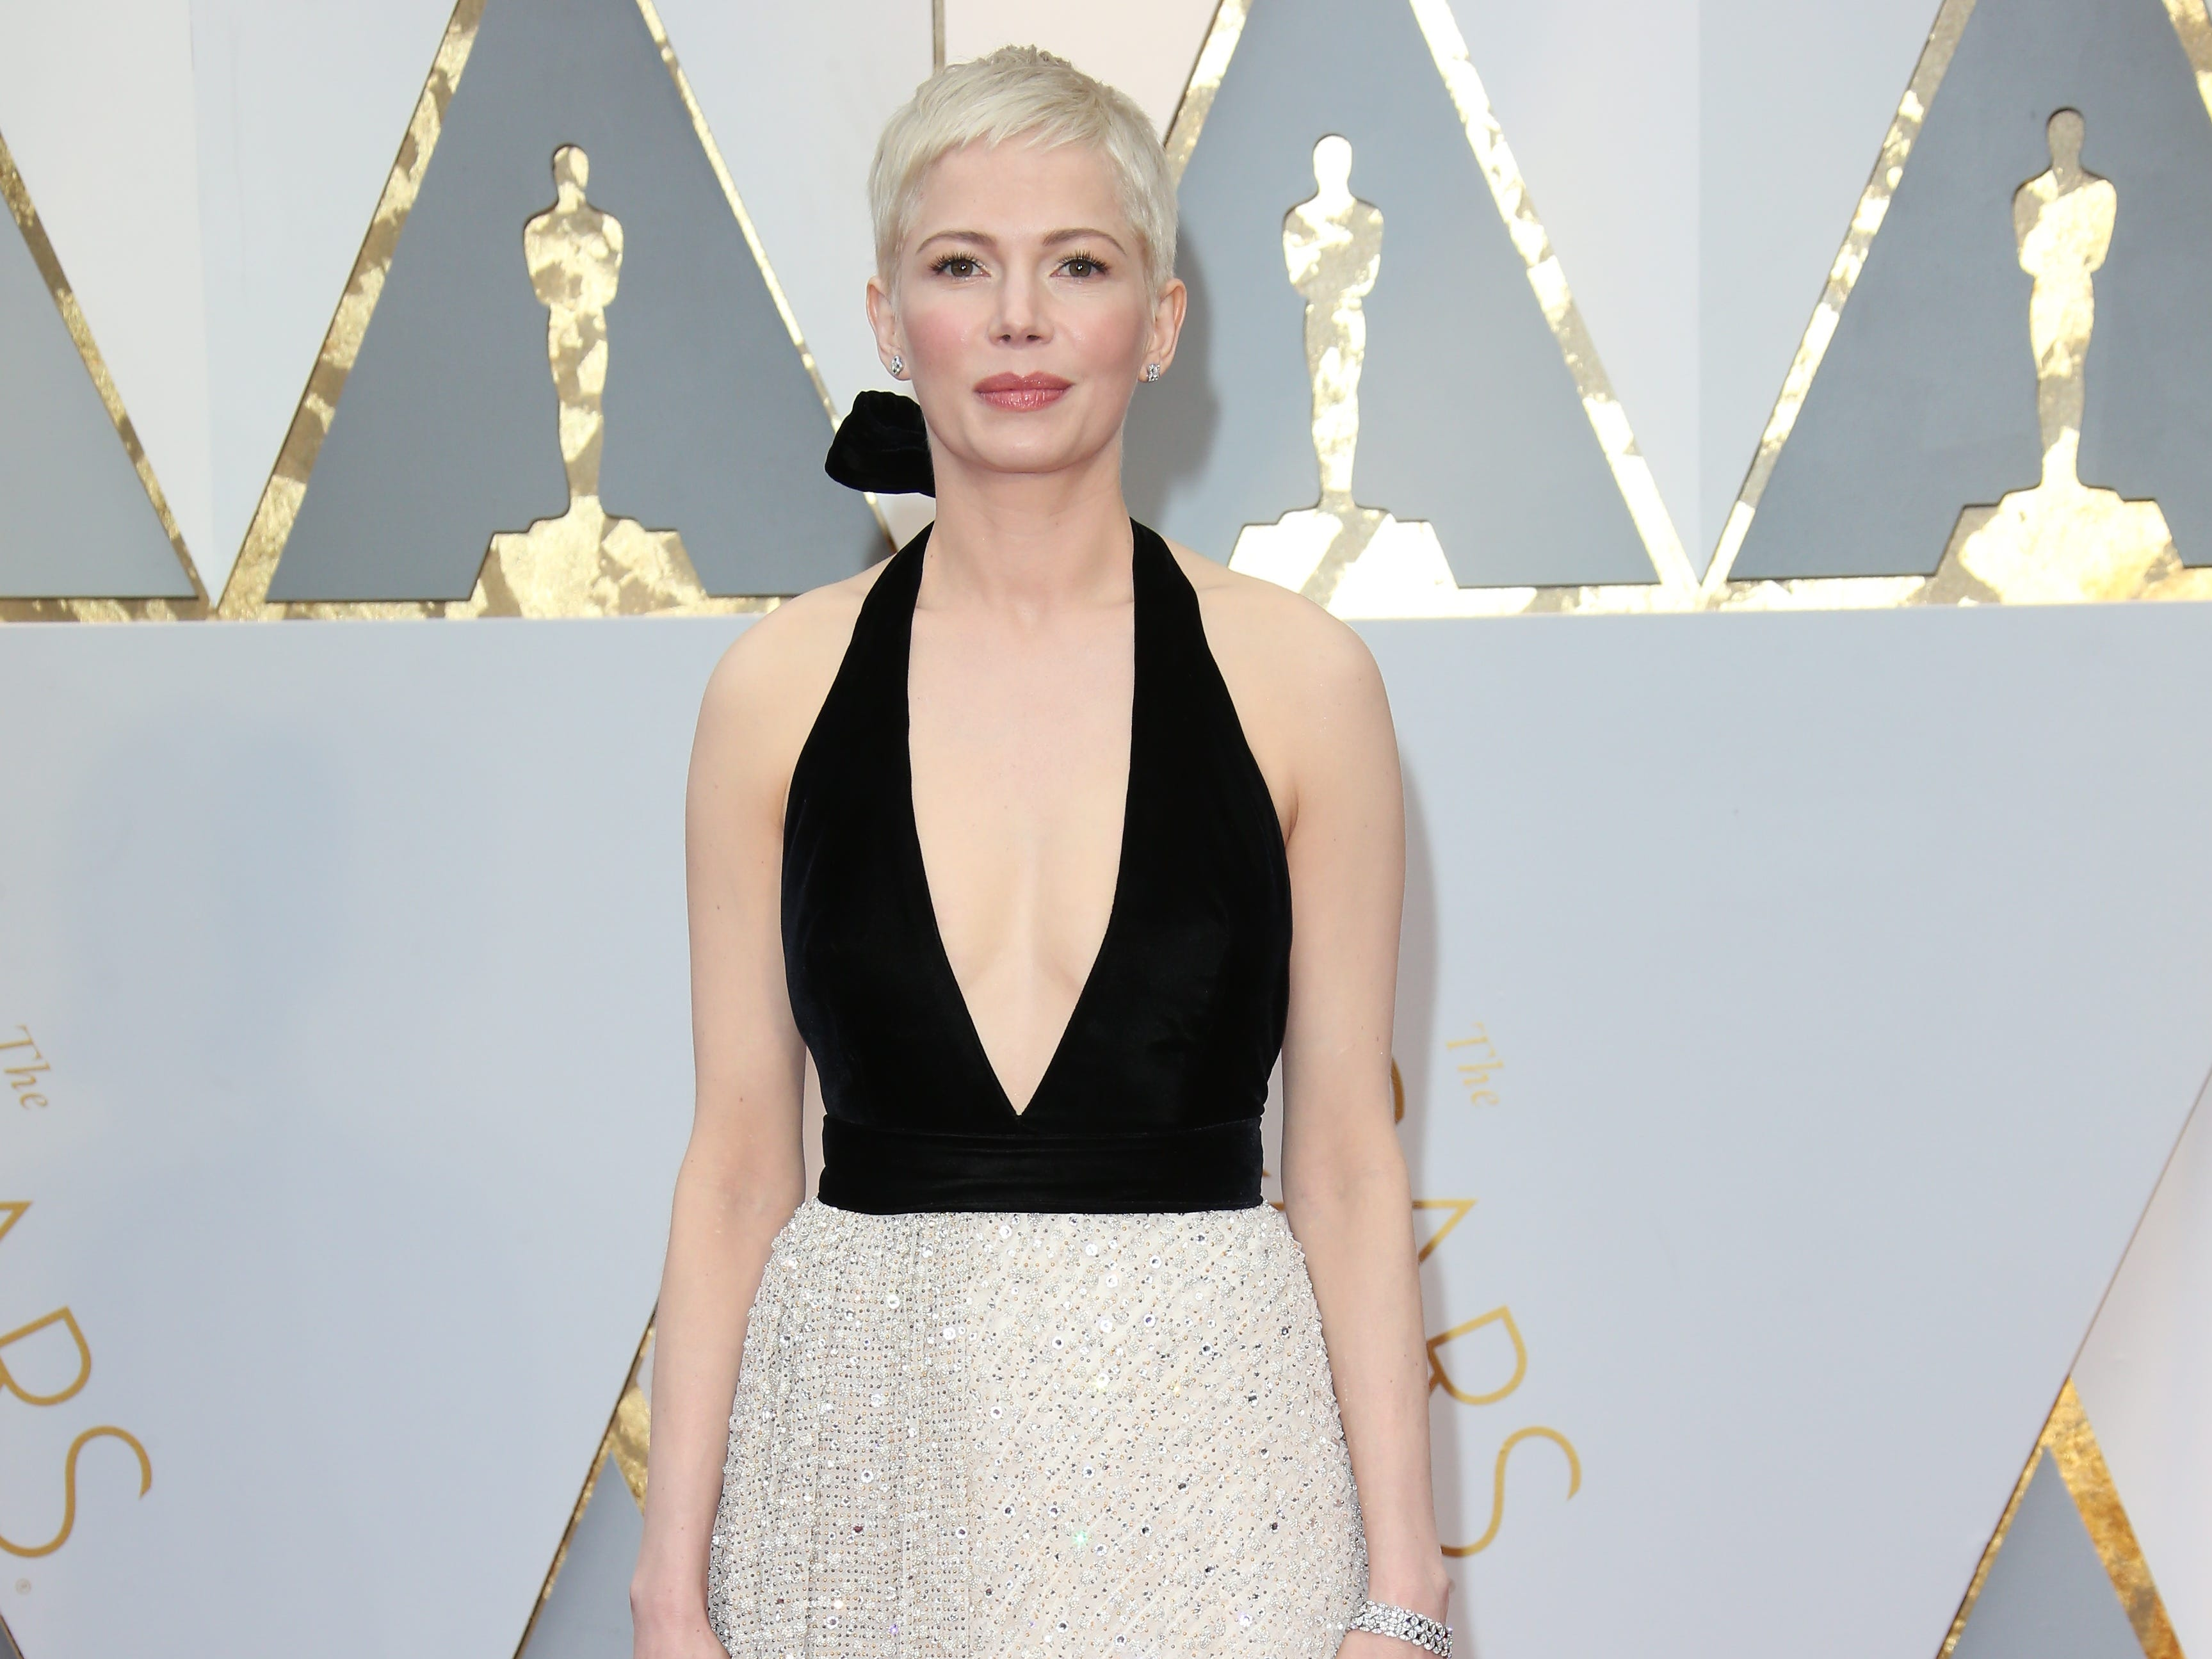 Feb 26, 2017; Hollywood, CA, USA; Michelle Williams on the red carpet during the 89th Academy Awards at Dolby Theatre. Mandatory Credit: Dan MacMedan-USA TODAY NETWORK ORG XMIT: USATSI-357477 (Via OlyDrop)